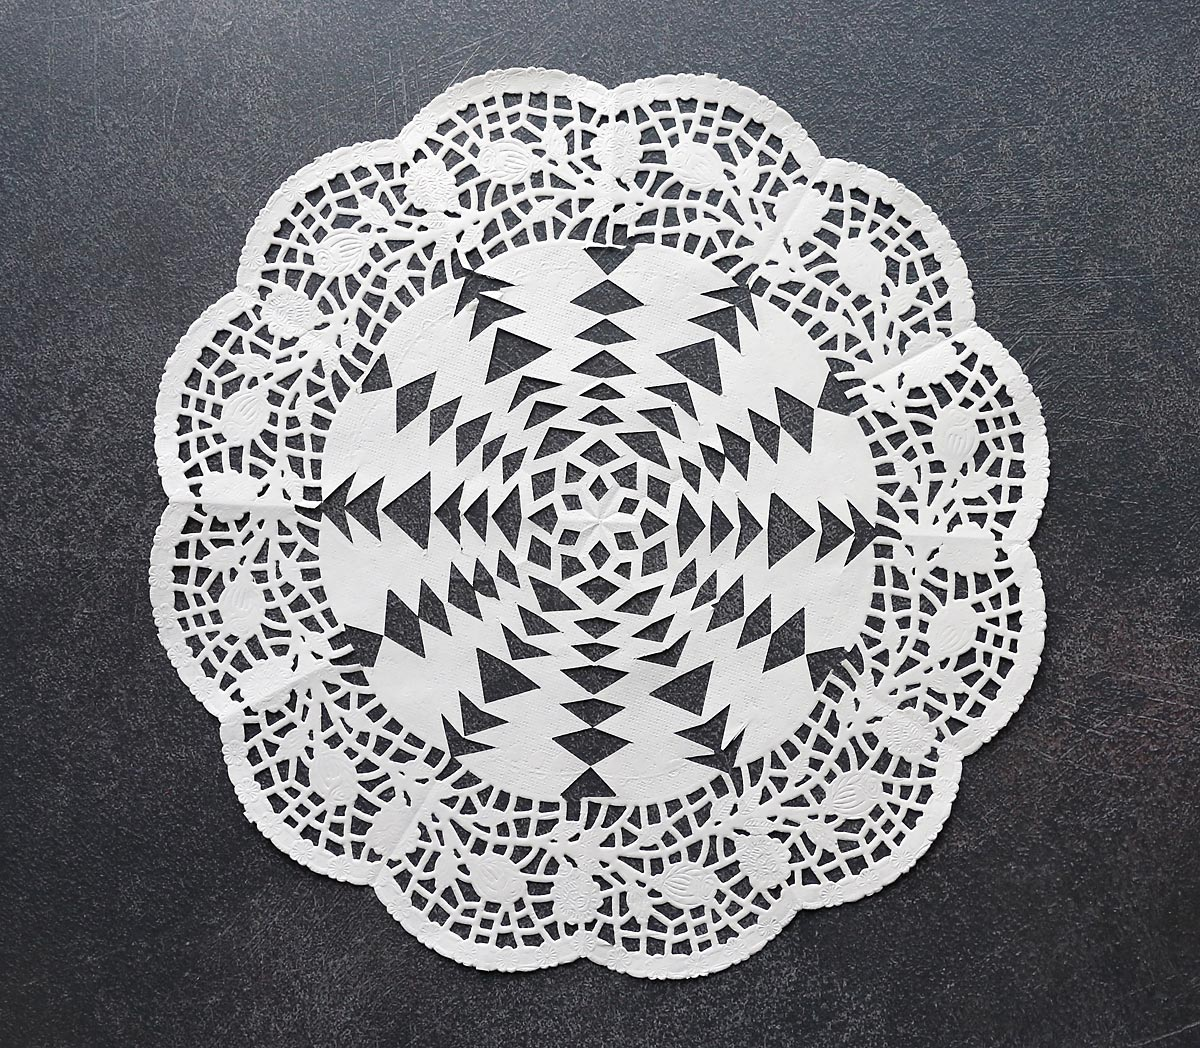 Paper doily cut into a snowflake